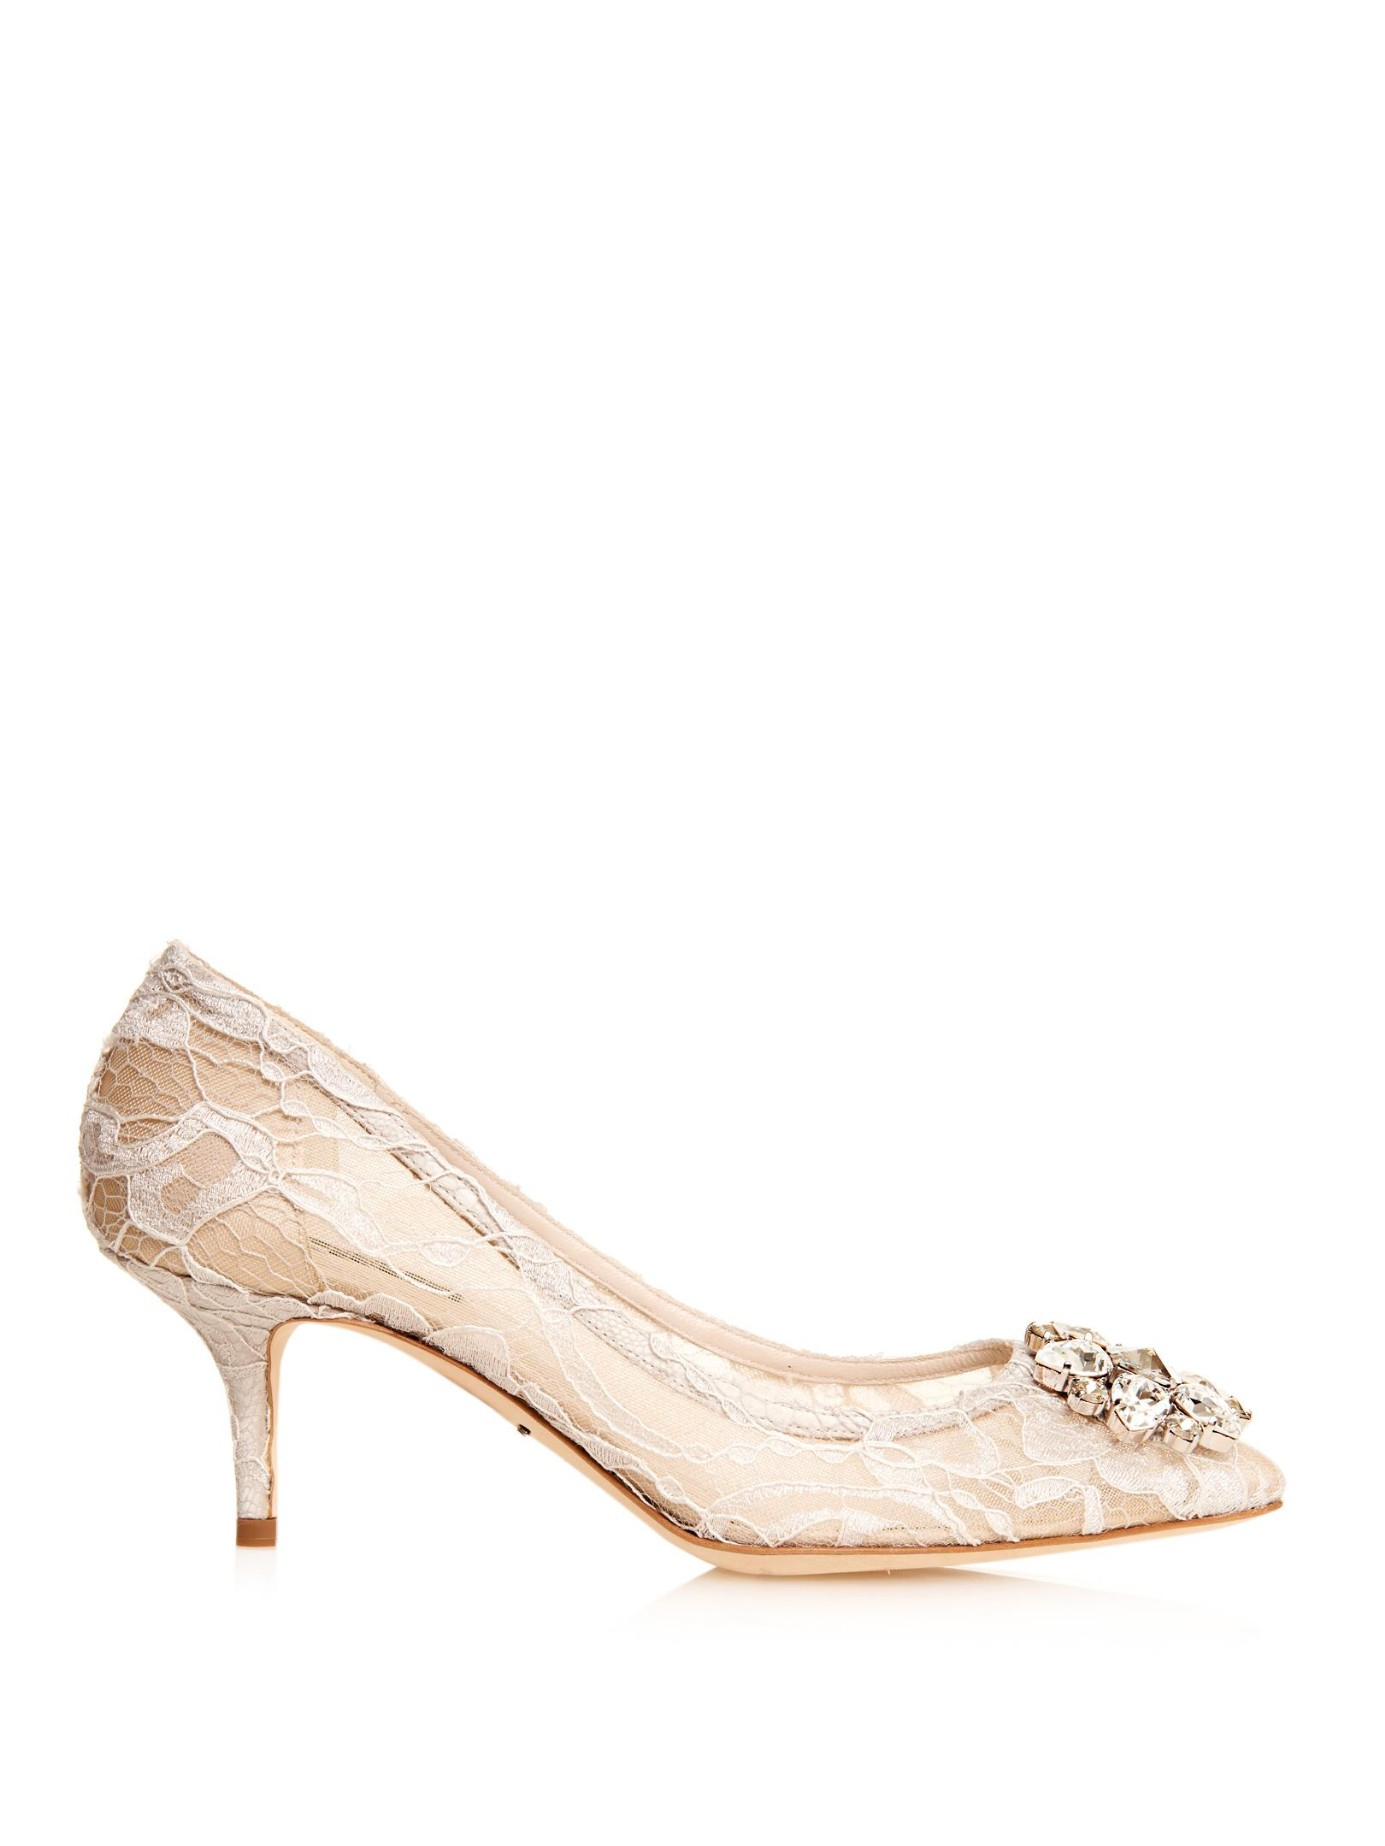 dd44965ac84 Lyst - Dolce   Gabbana Embellished Lace Pumps in Natural